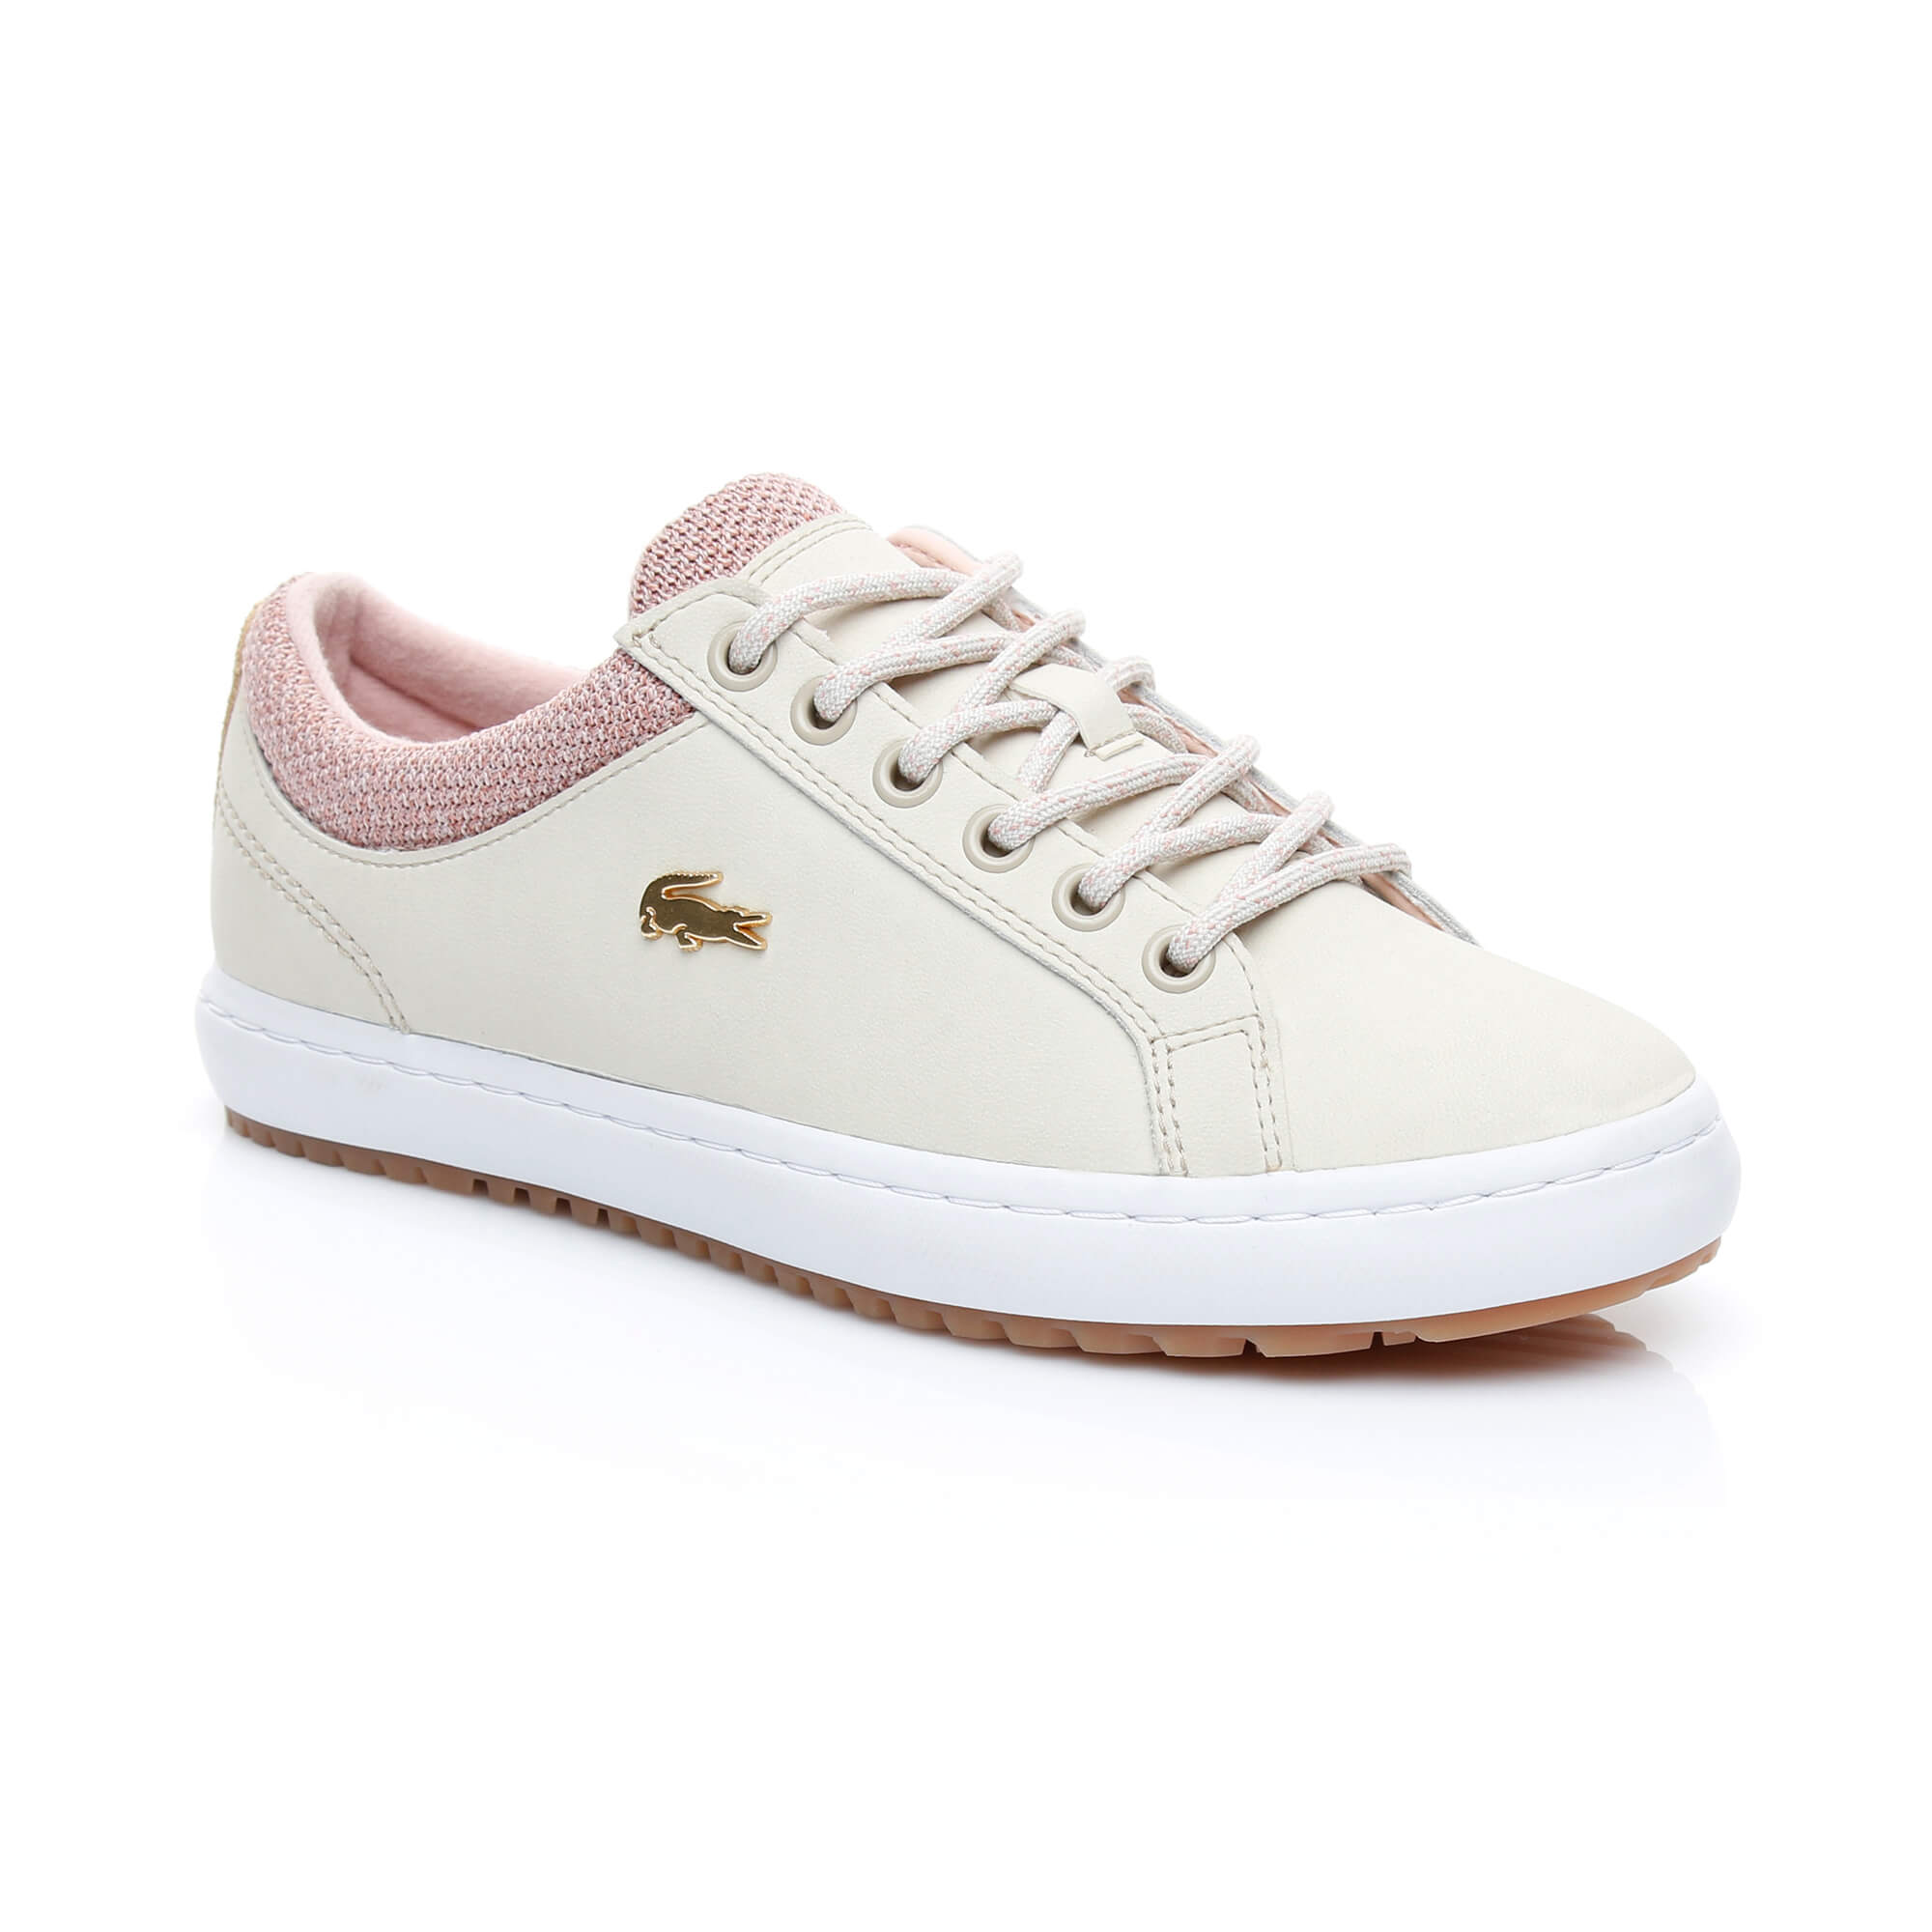 Lacoste Straightset Insulate 318 1 Damskie Sneakersy